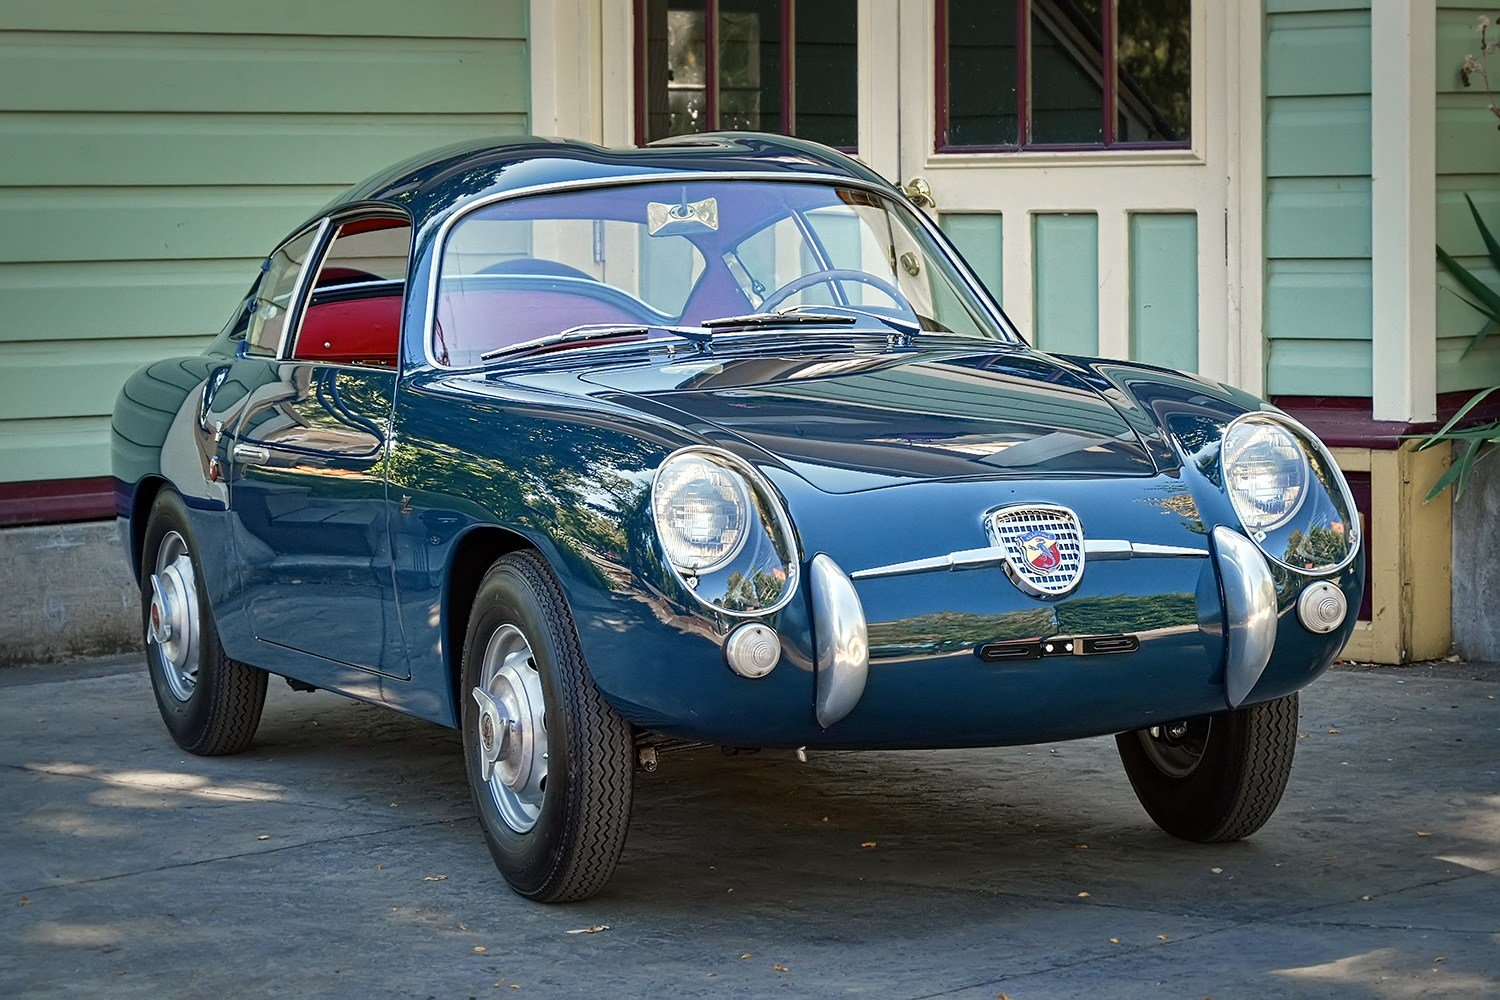 New Restored 1958 Fiat Abarth 750 Zagato Sports Car Shop On This Month